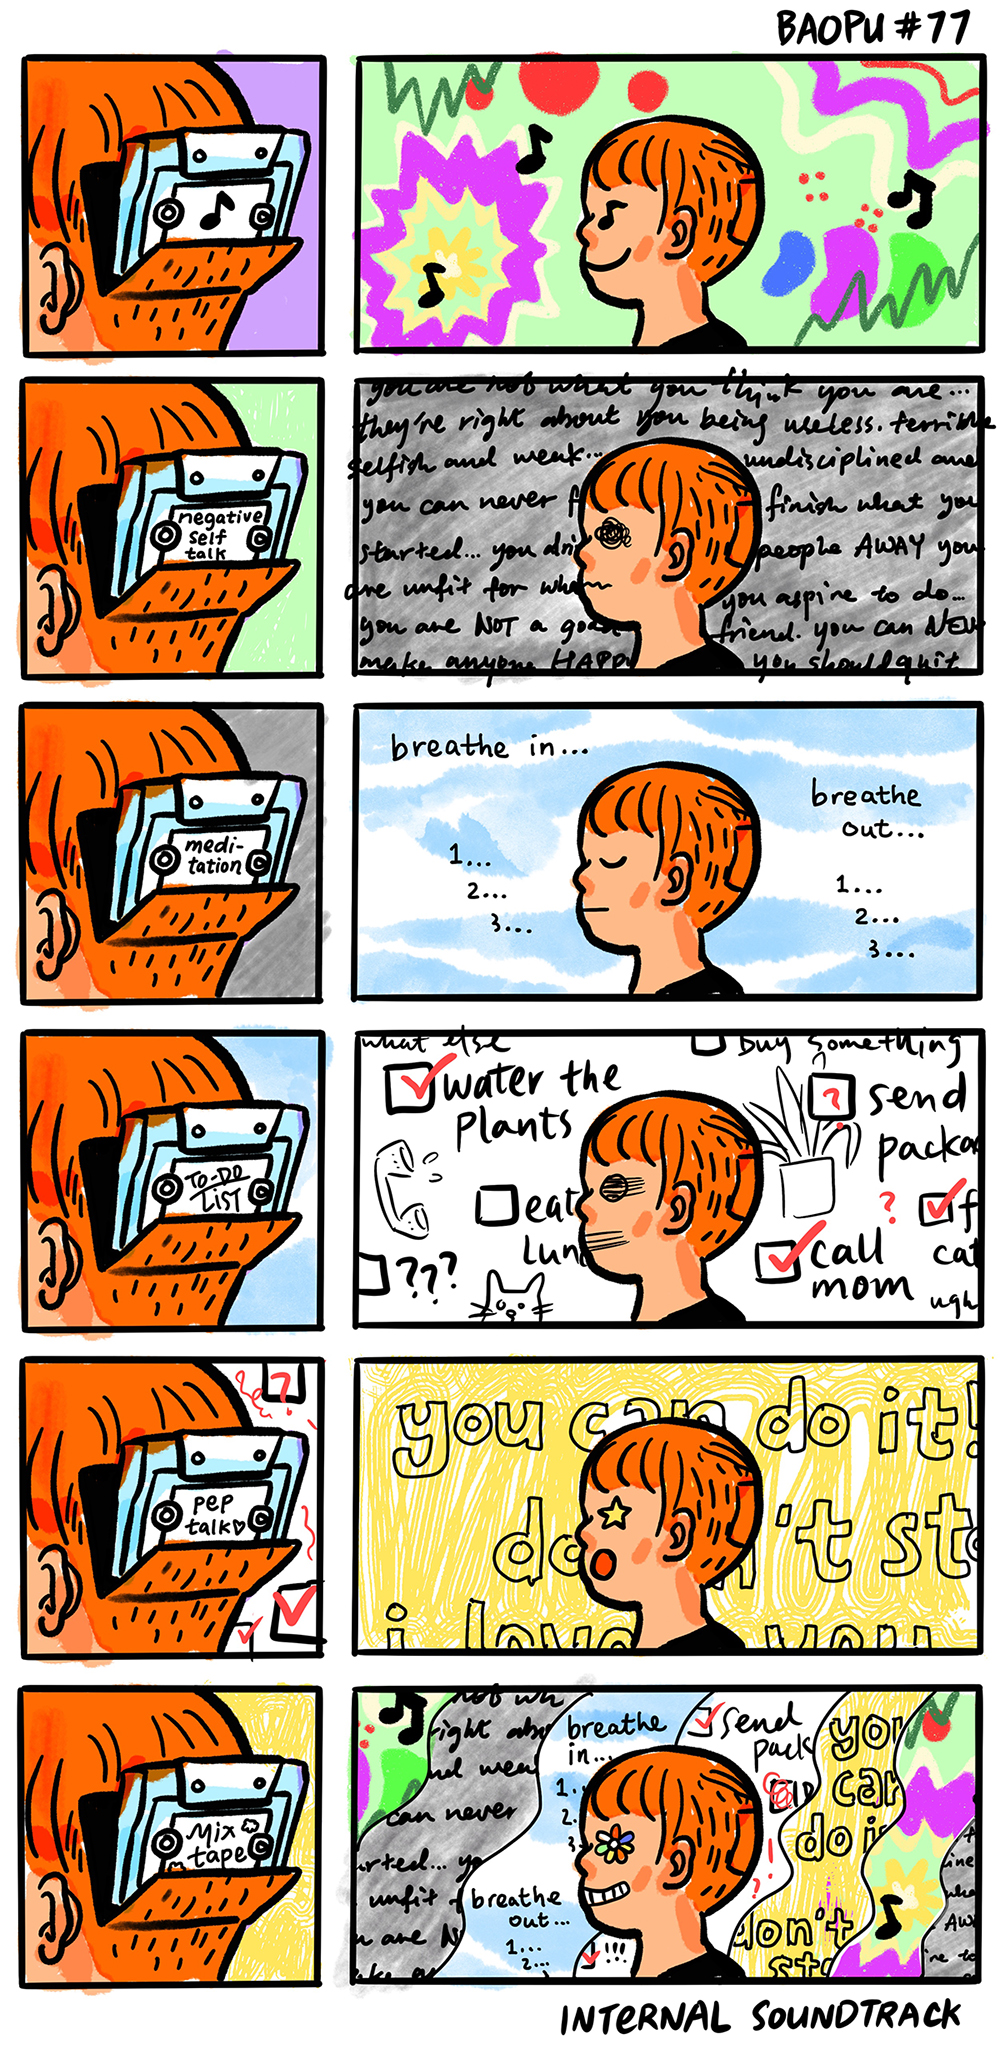 "A 12-panel comic. There's a cassette that is hanging out the back of Yao's head, like the old cassette players in the '90s. At first Yao is listening to music in their mental cassette tape, and then they listen to negative self talk, then there is meditation, and that is followed by a To-Do list, and then there is ""pep talk."" Finally, smiling the biggest smile, Yao's mental cassette player plays a mixed tape of all of those things at the same time. IT's about finding the balance of your own internal soundtrack."